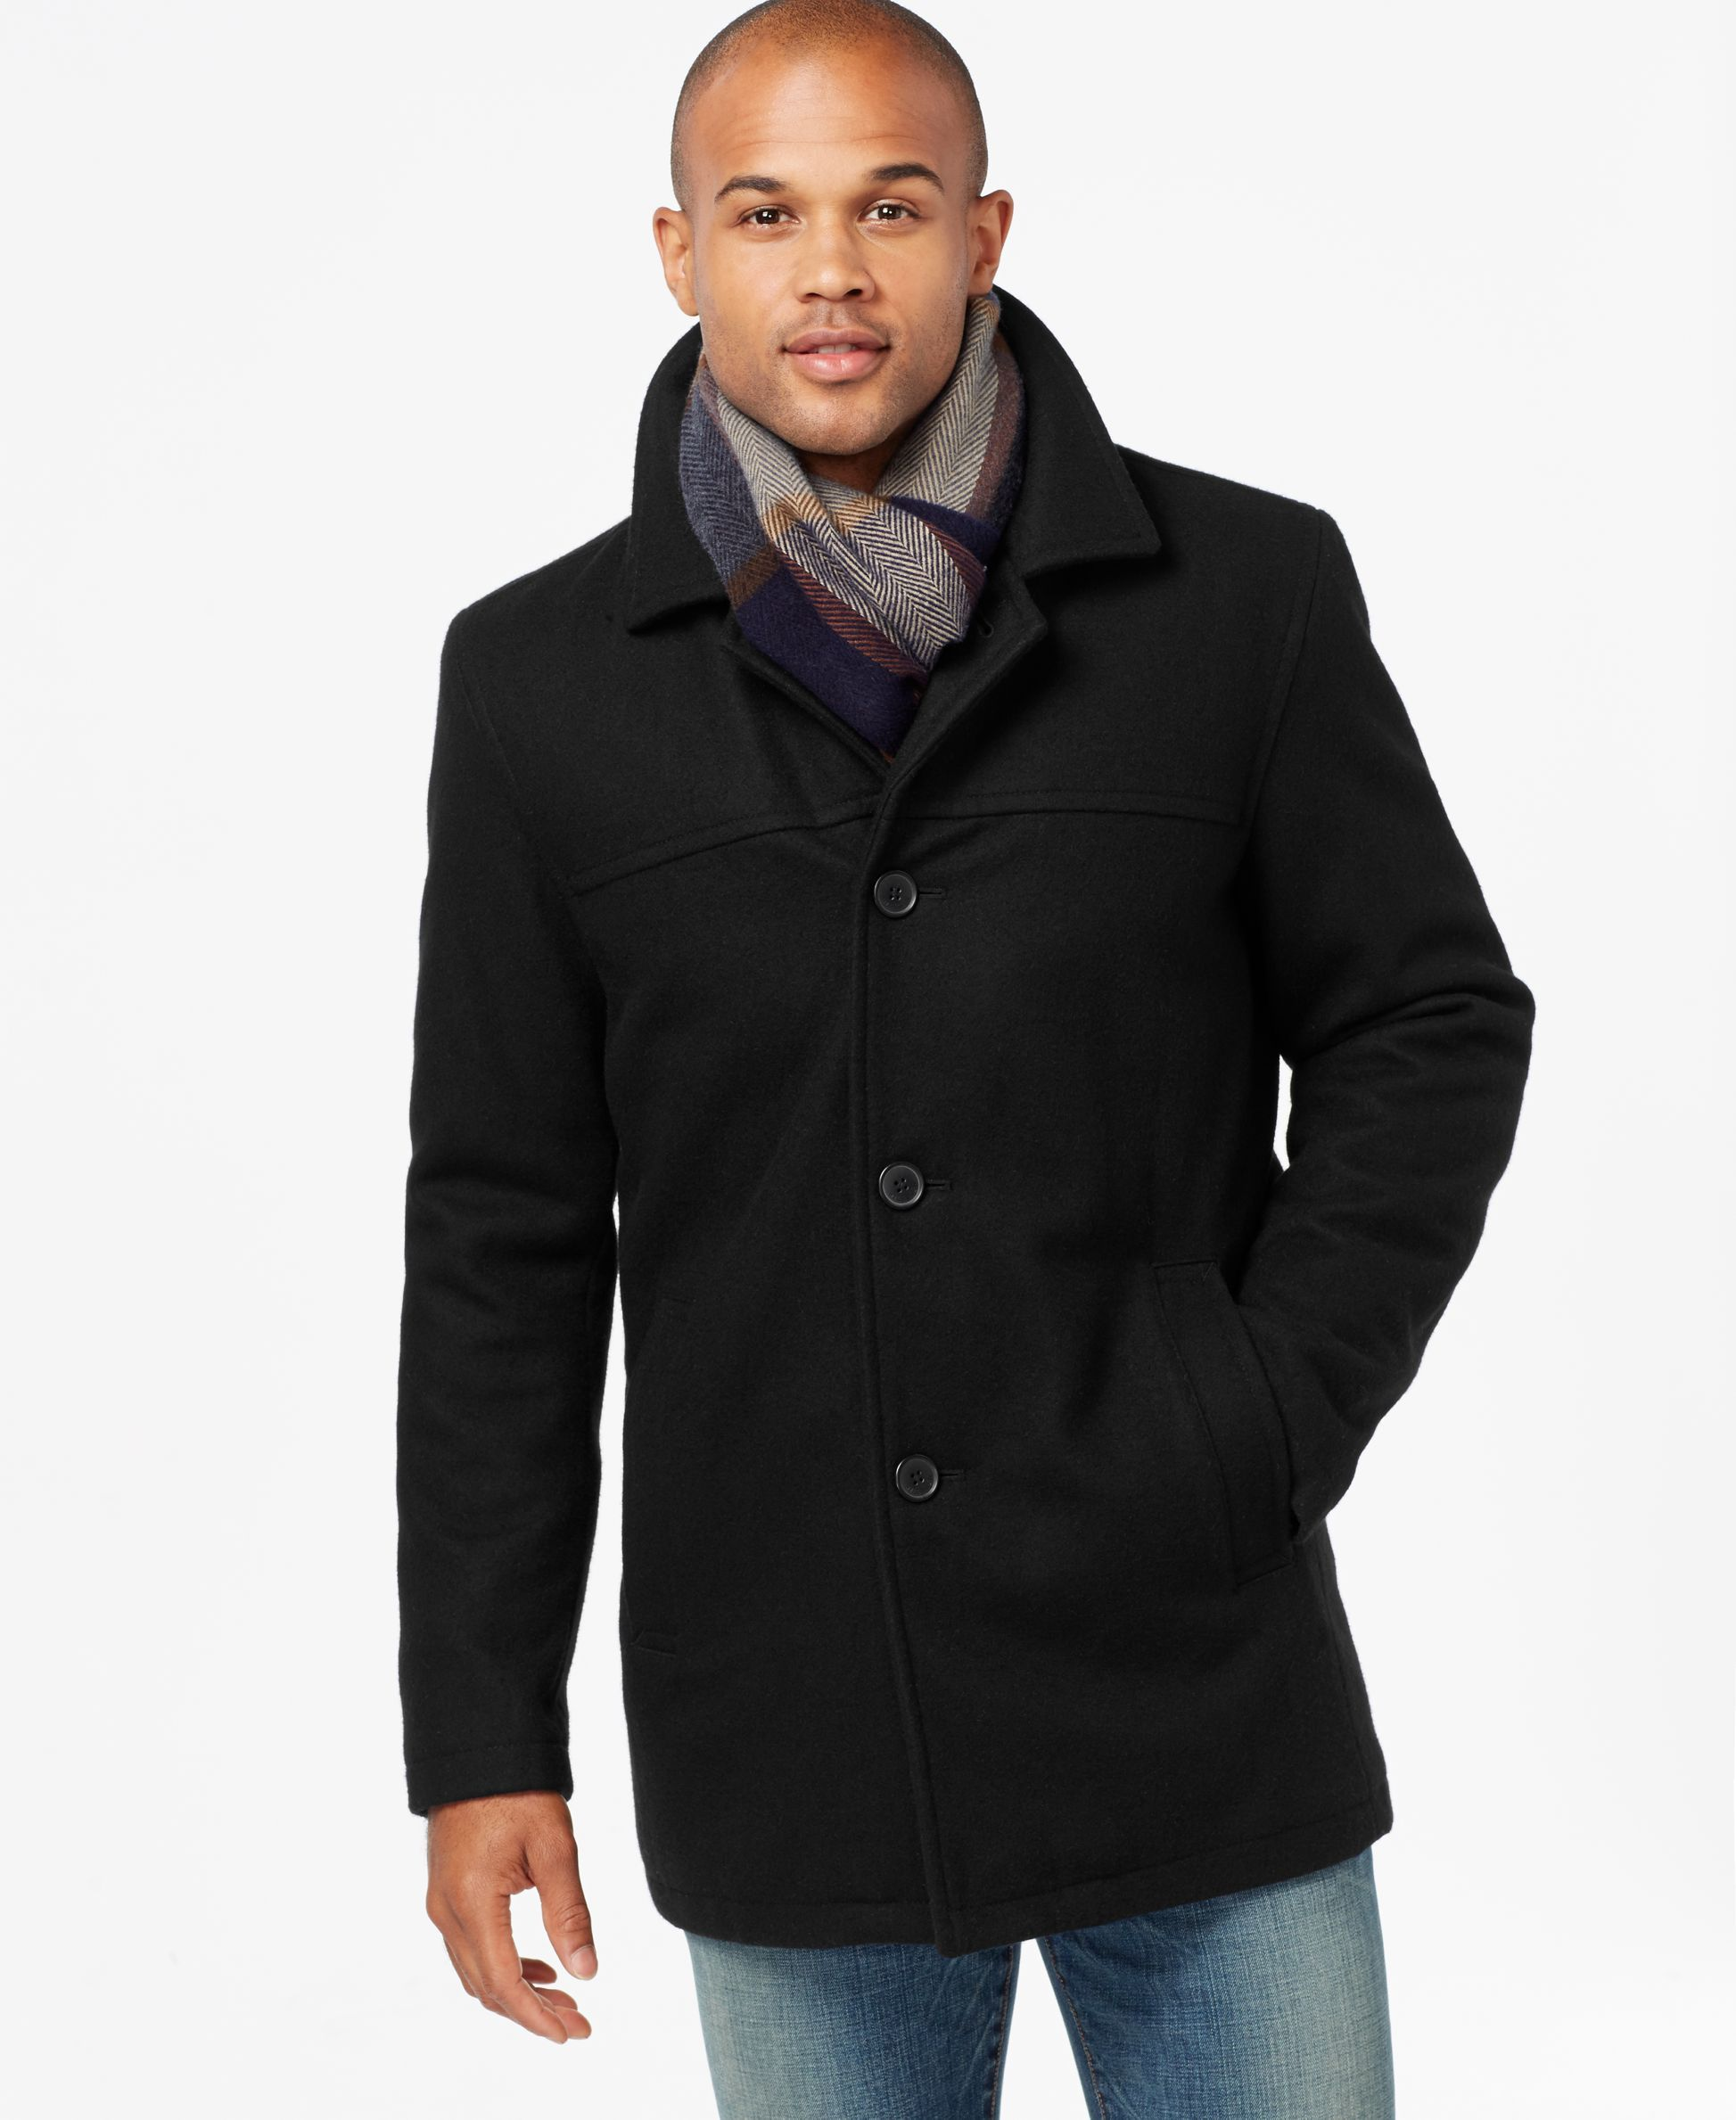 7f2b76d9 Melton Wool Walking Coat with Scarf | winterwardrobe | Mens wool ...